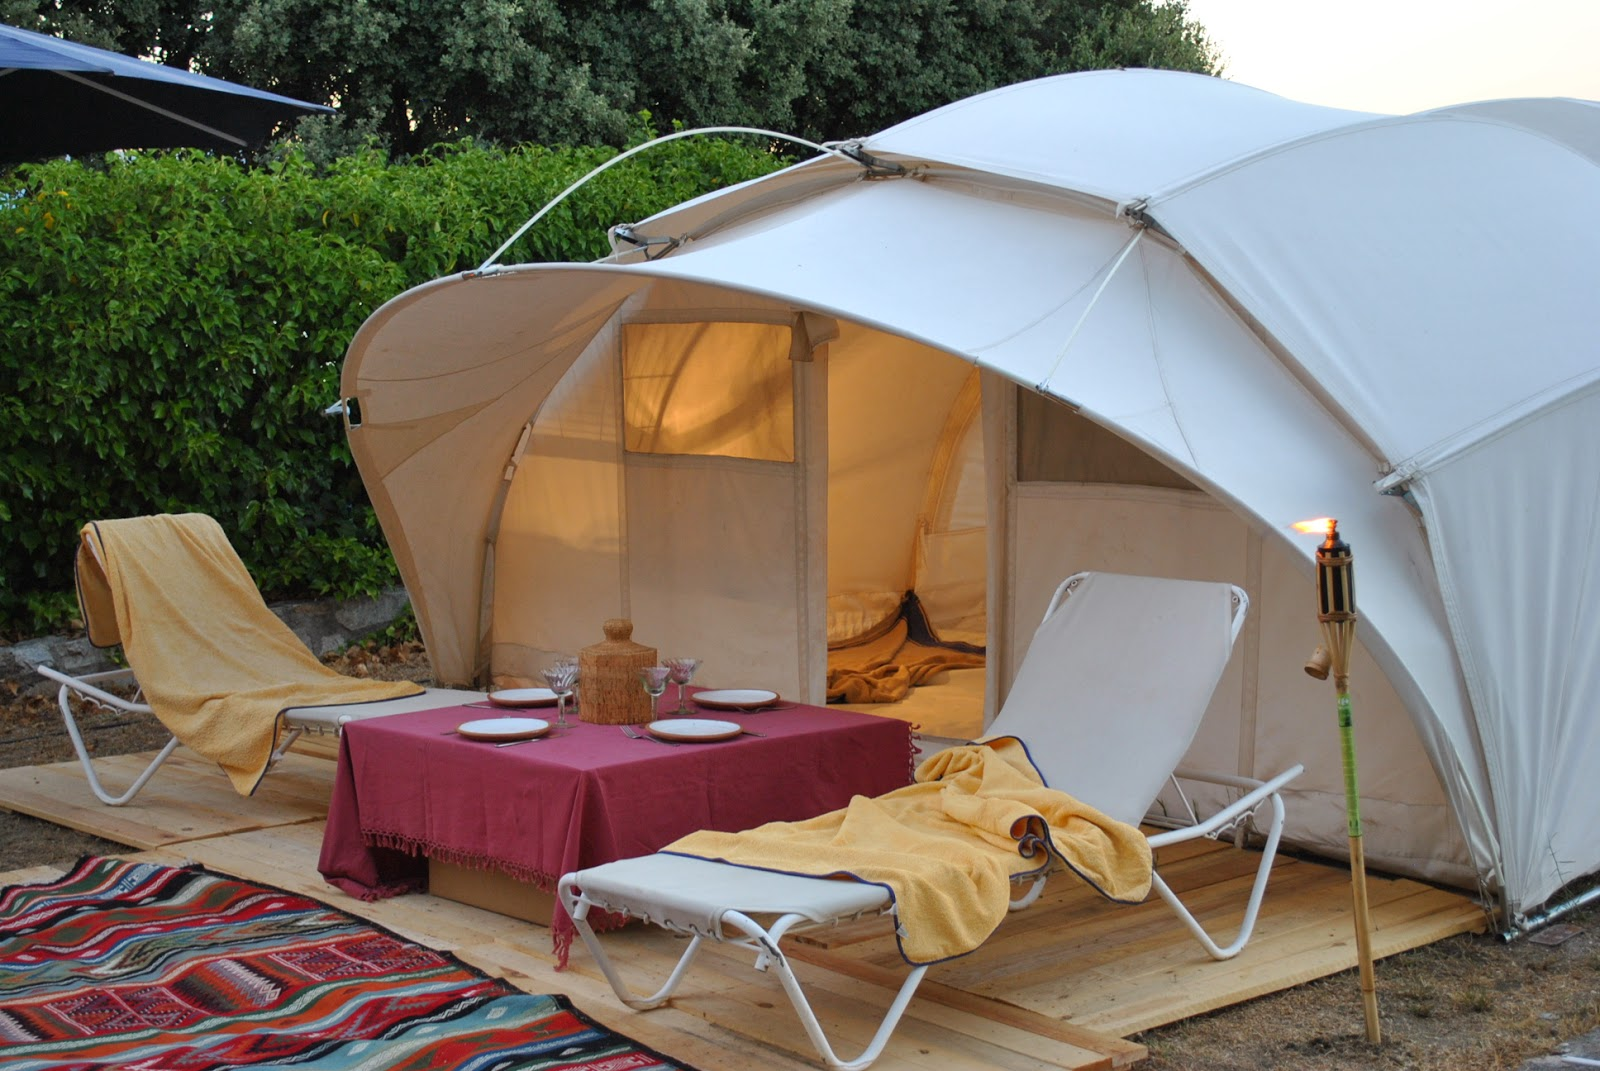 Brakfast glamping Ctents Luxury tents for Resorts and Hotels